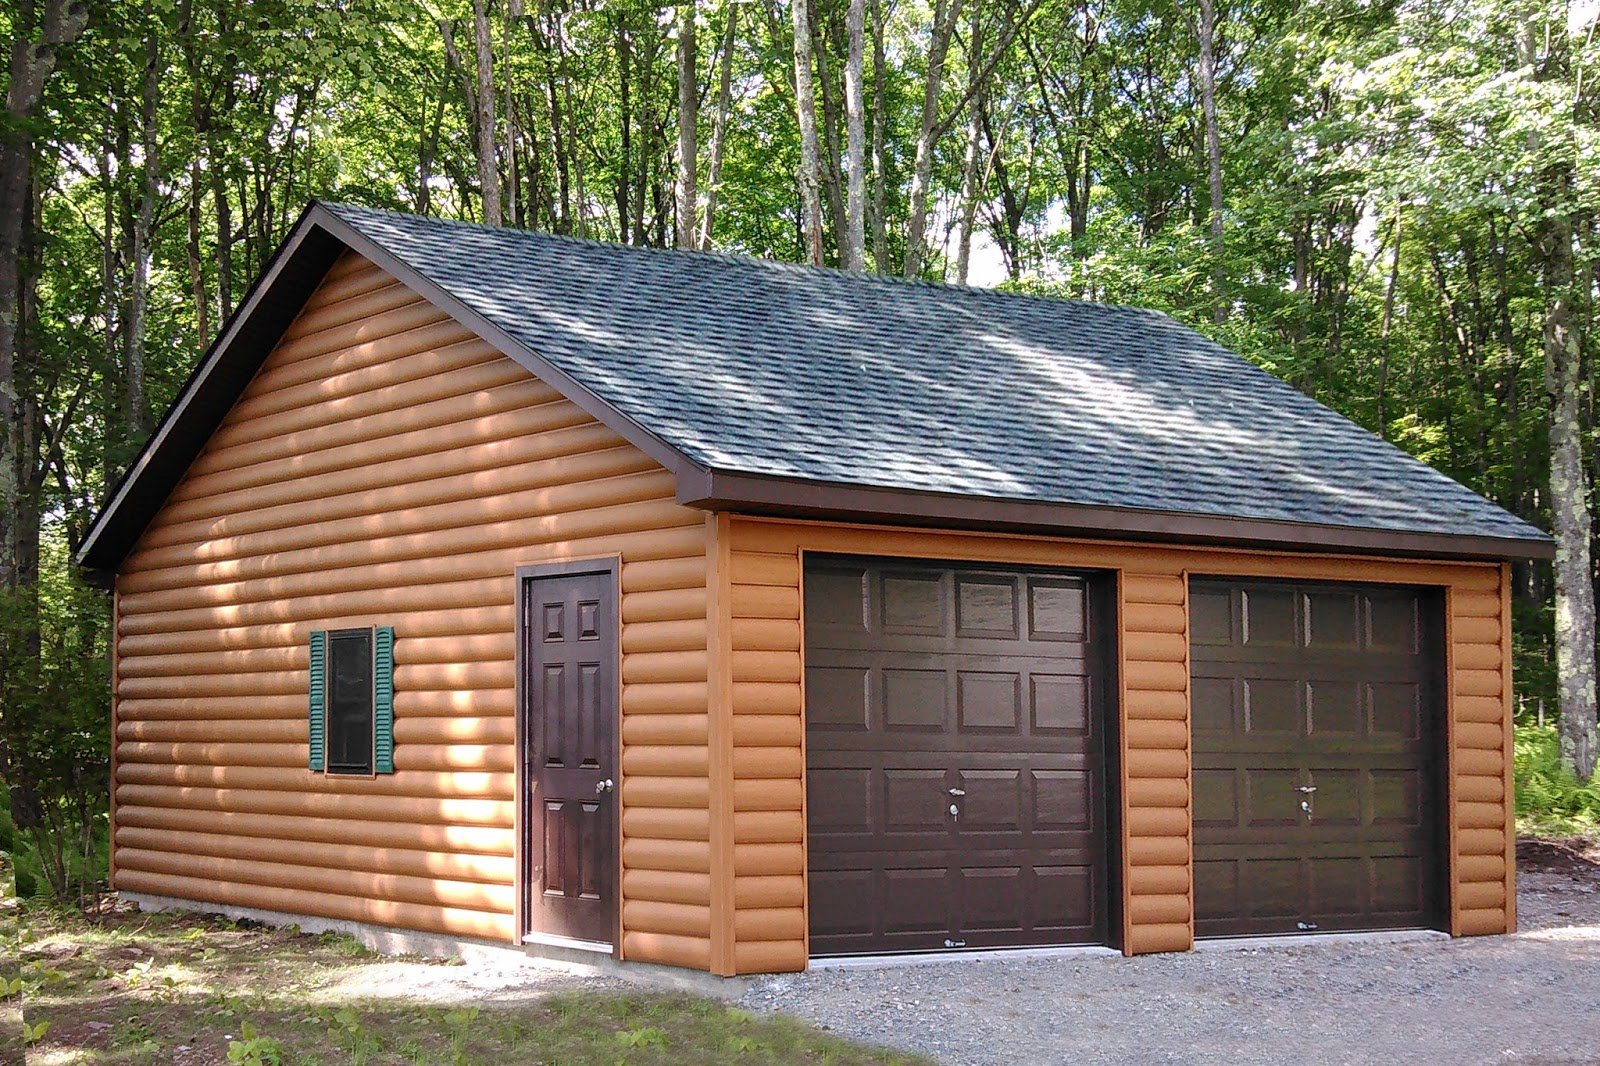 Prefab car garages for sale in pa nj ny ct de md va for Garage house kits